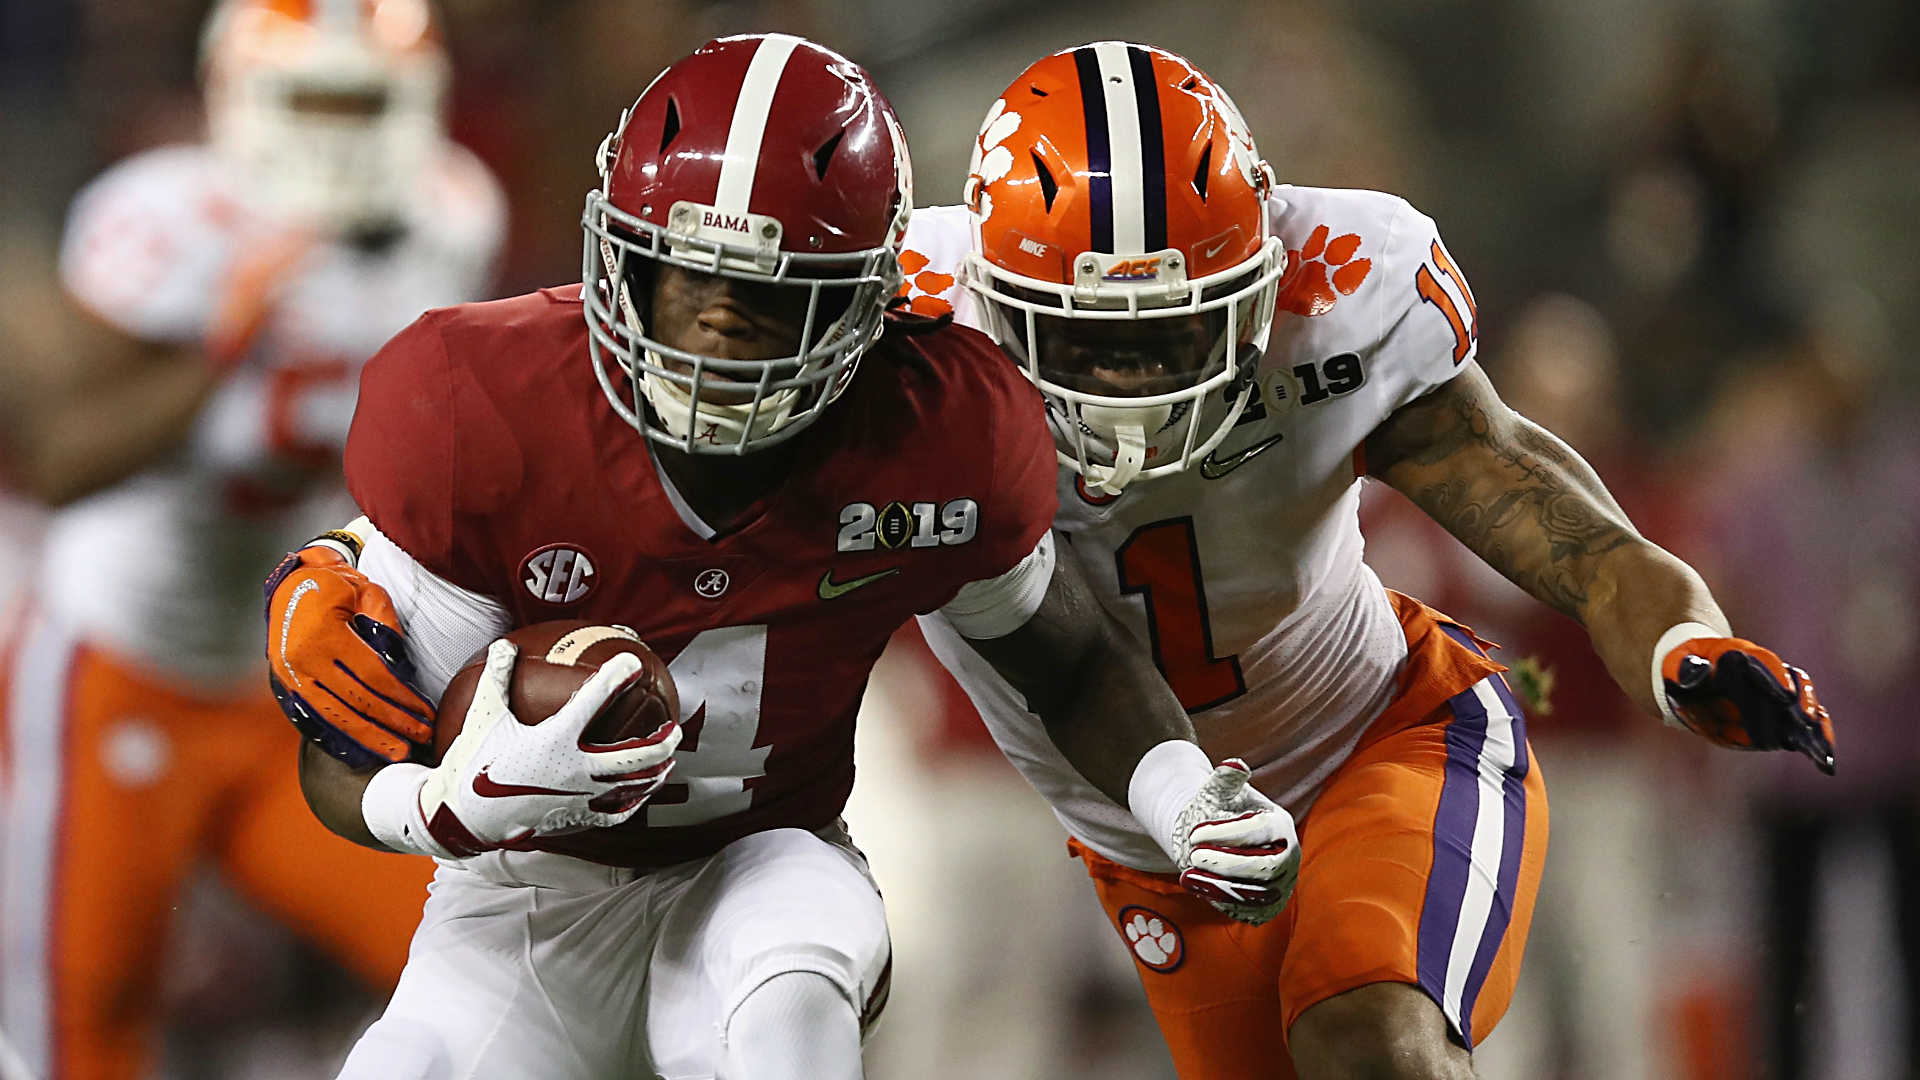 2020 NFL Draft prospects: Big board of top 50, best players by position